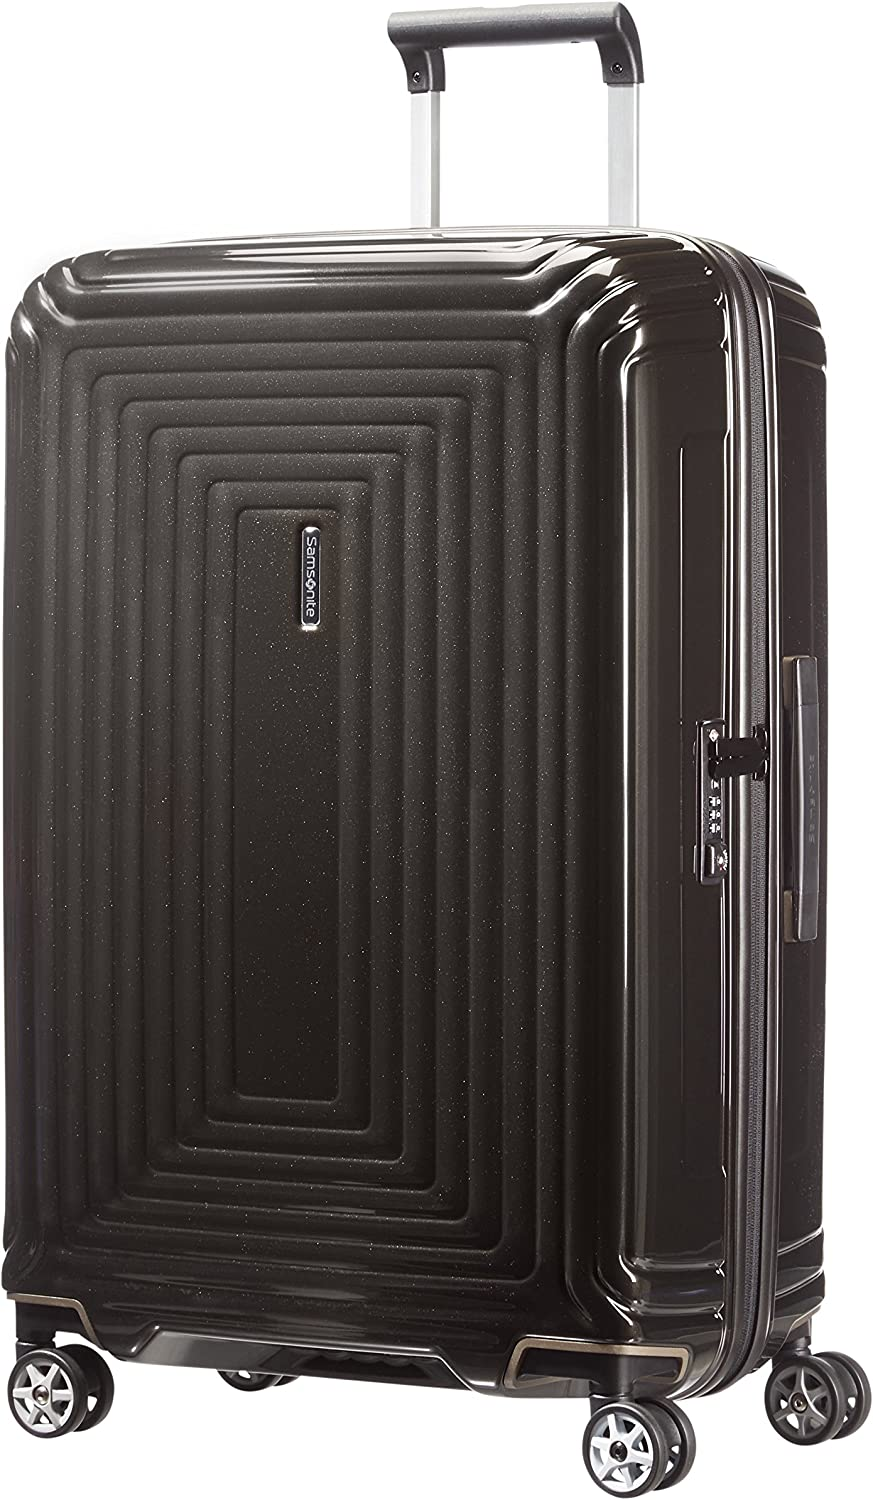 Samsonite Neopulse - Spinner M Maleta, 69 cm, 74 L, Negro (Metallic Black)